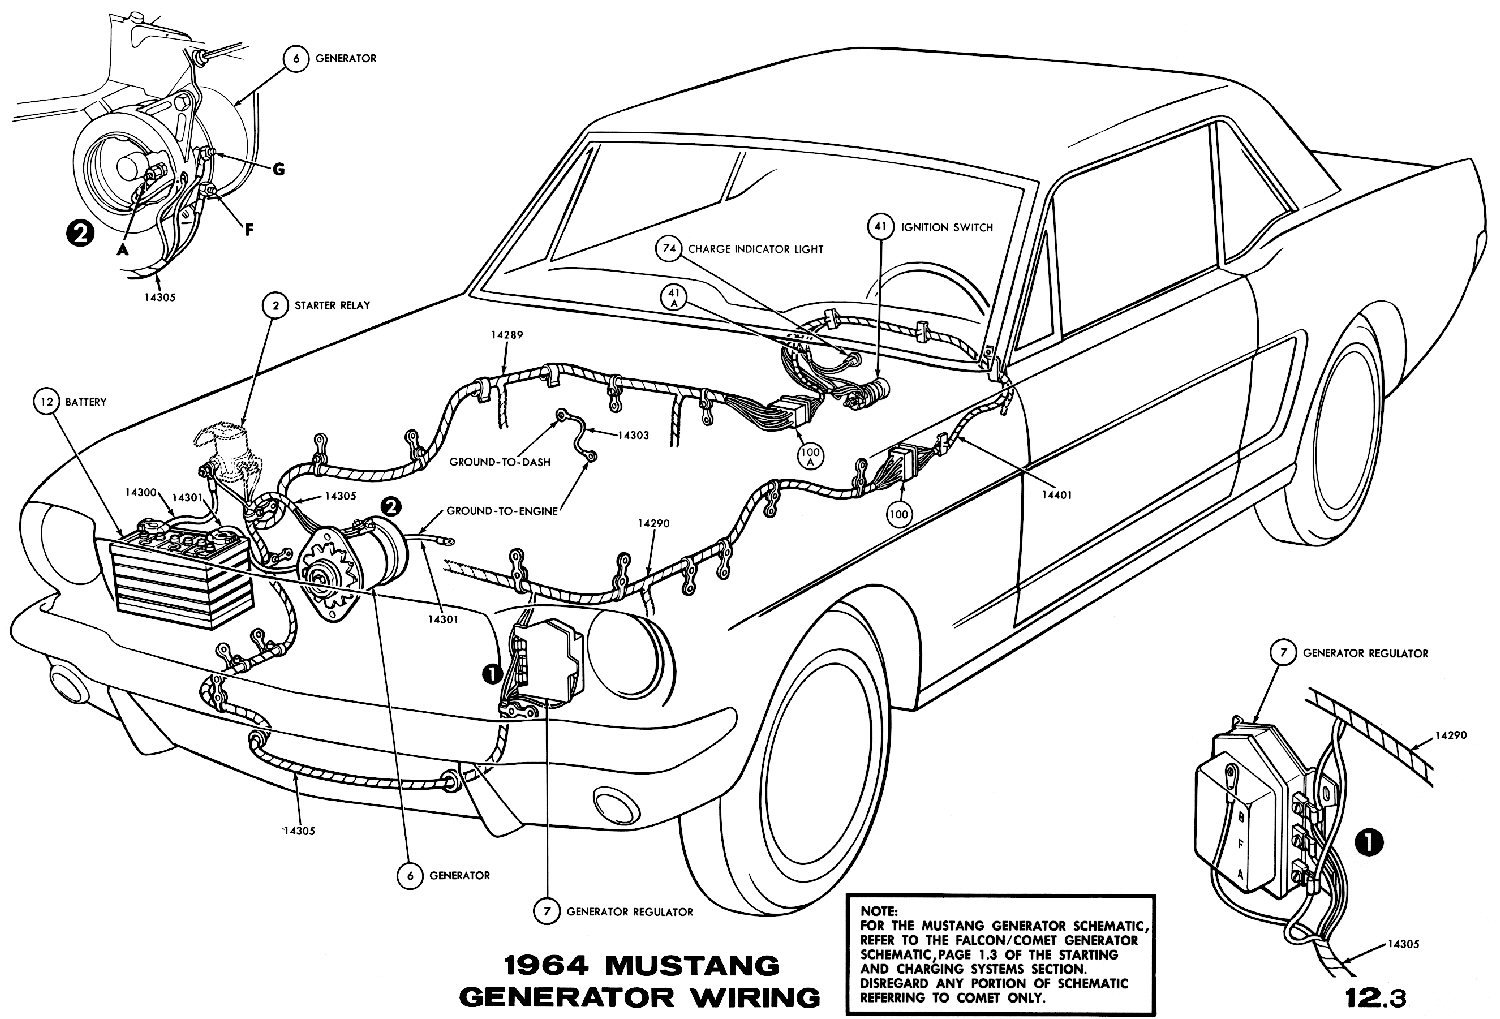 1964 Mustang Wiring Diagrams Average Joe Restoration